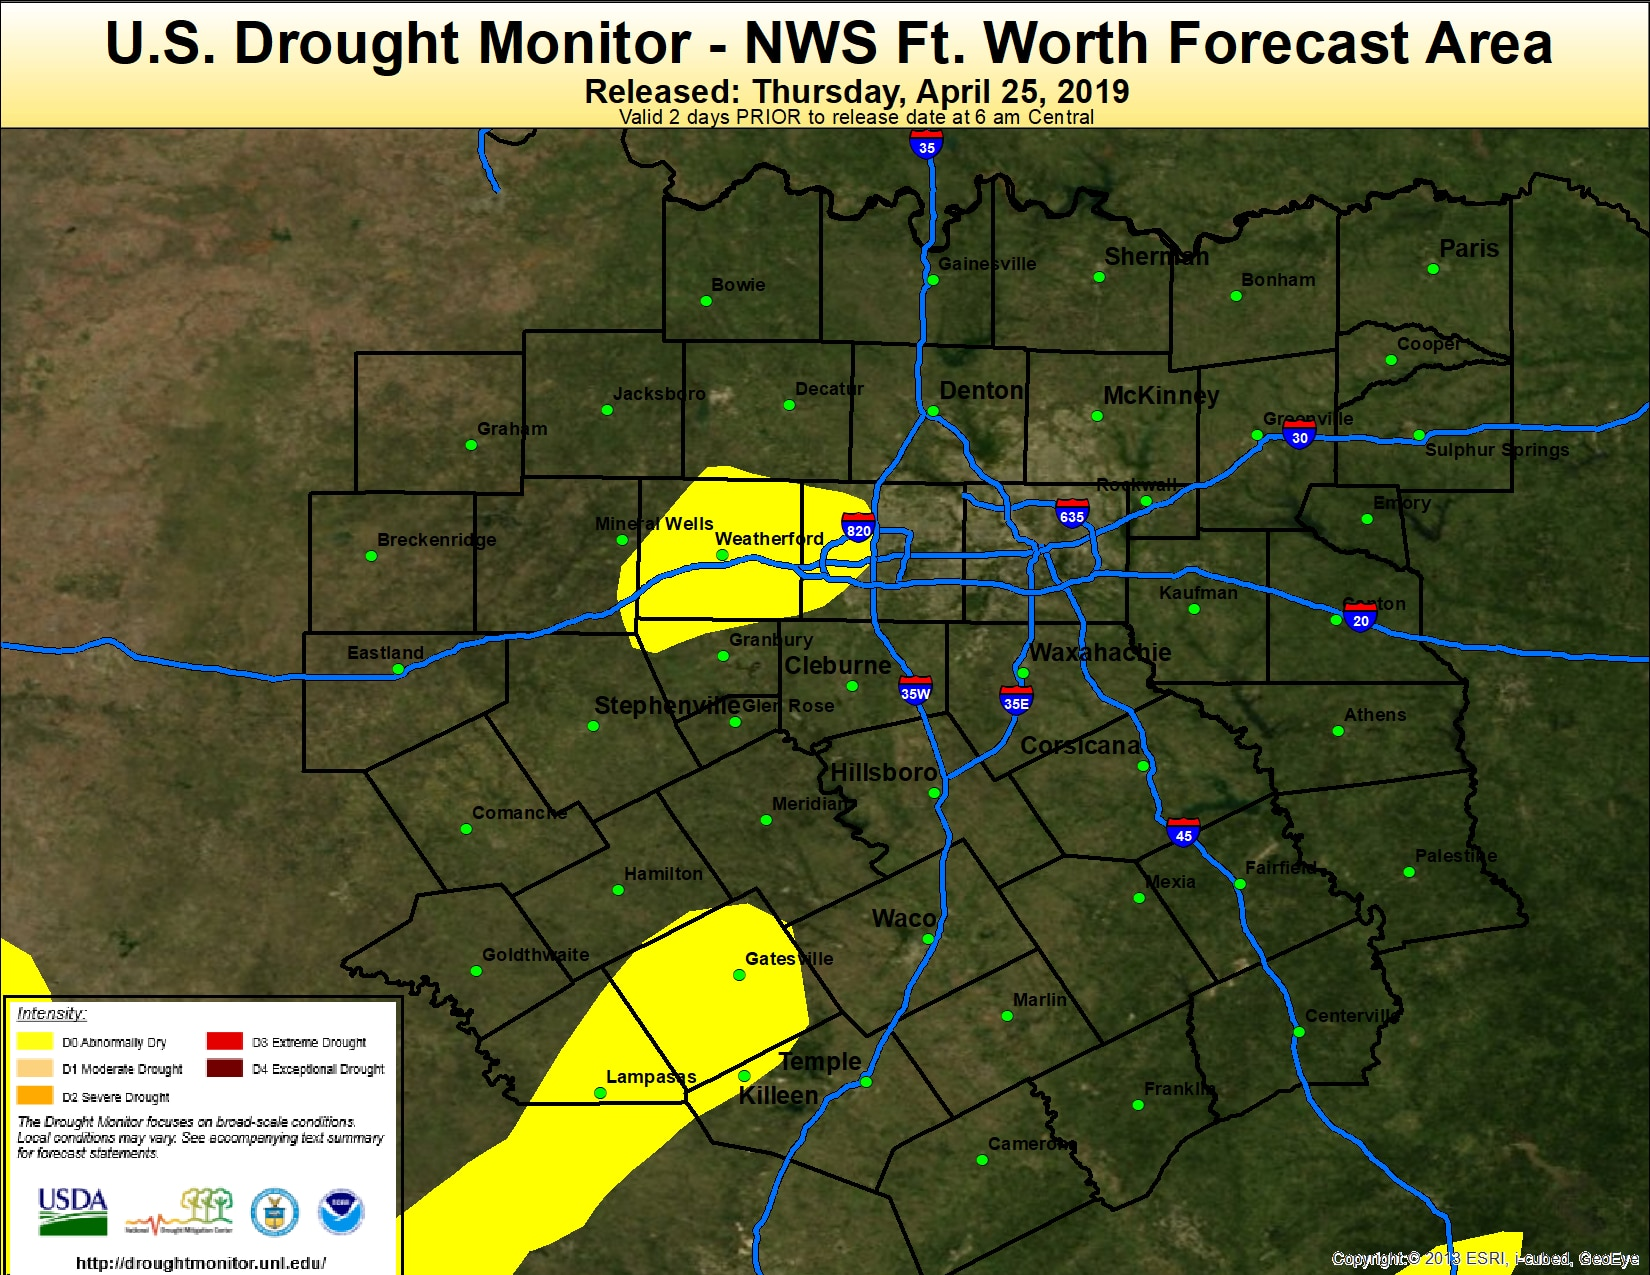 Portions of Tarrant County are abnormally dry on the U.S. Drought Monitor issued April 25, 2019.